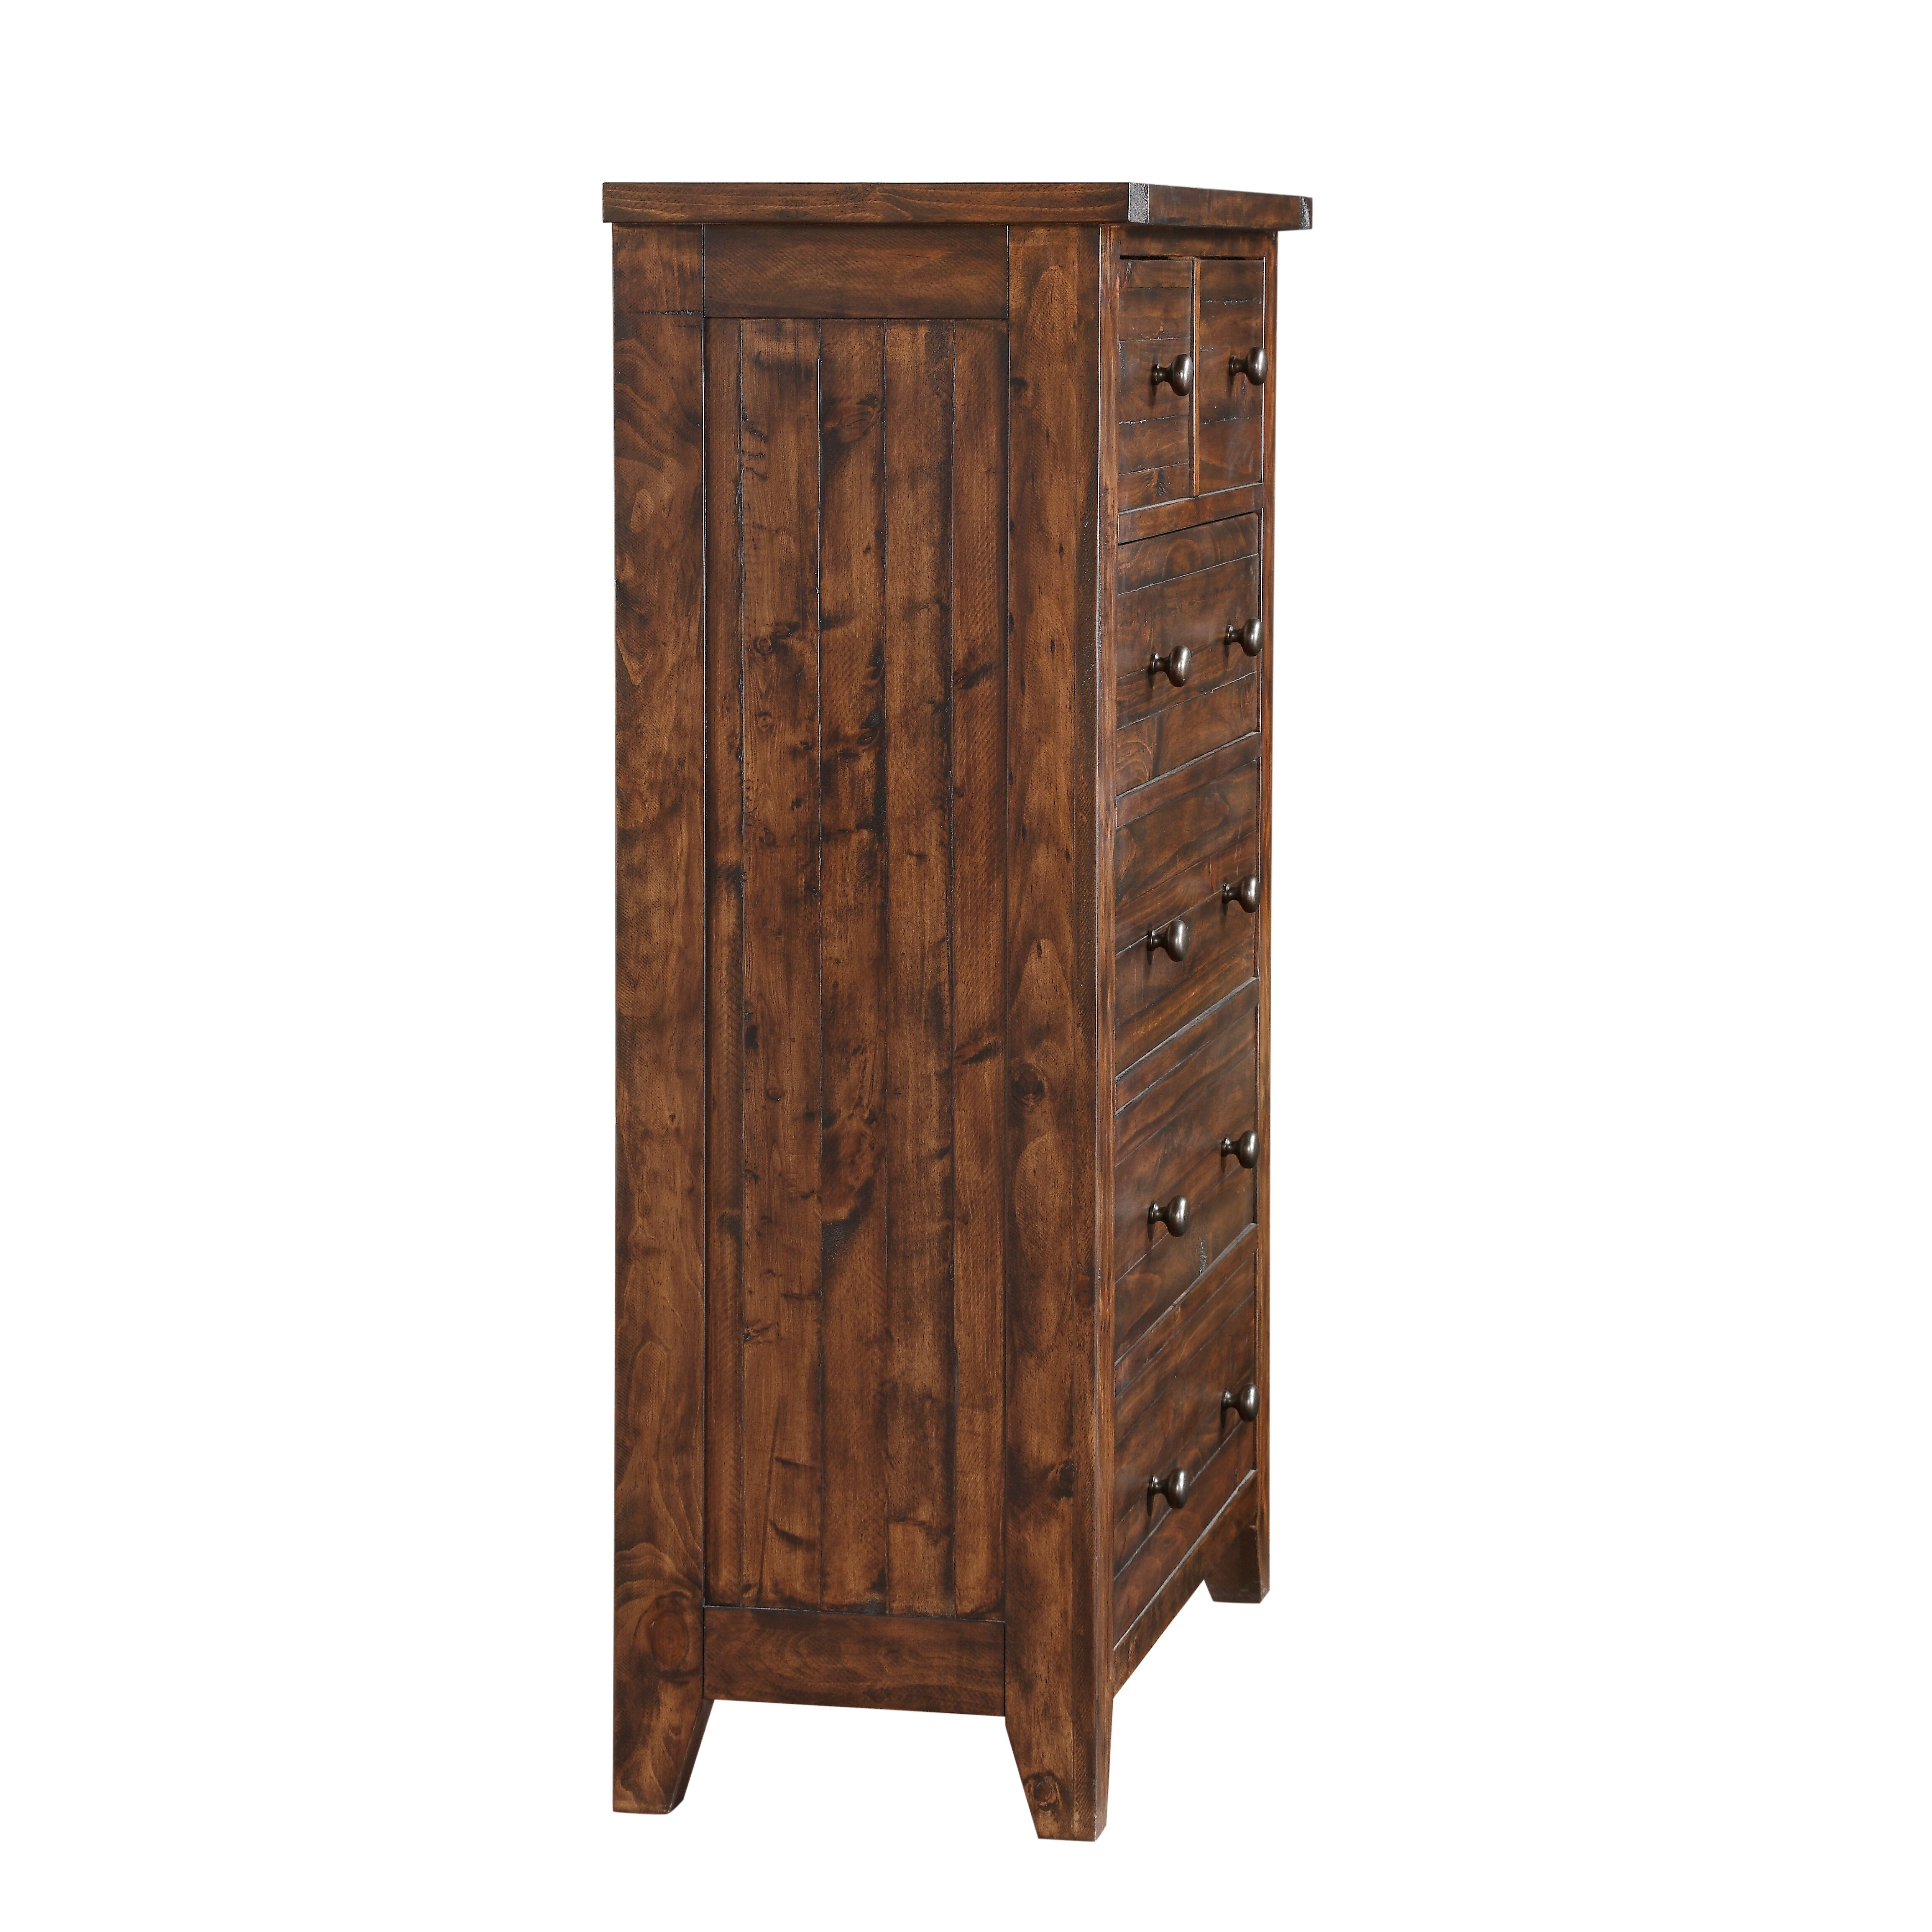 Modus cally 6 drawer chest reviews wayfair for 1 door 6 drawer chest